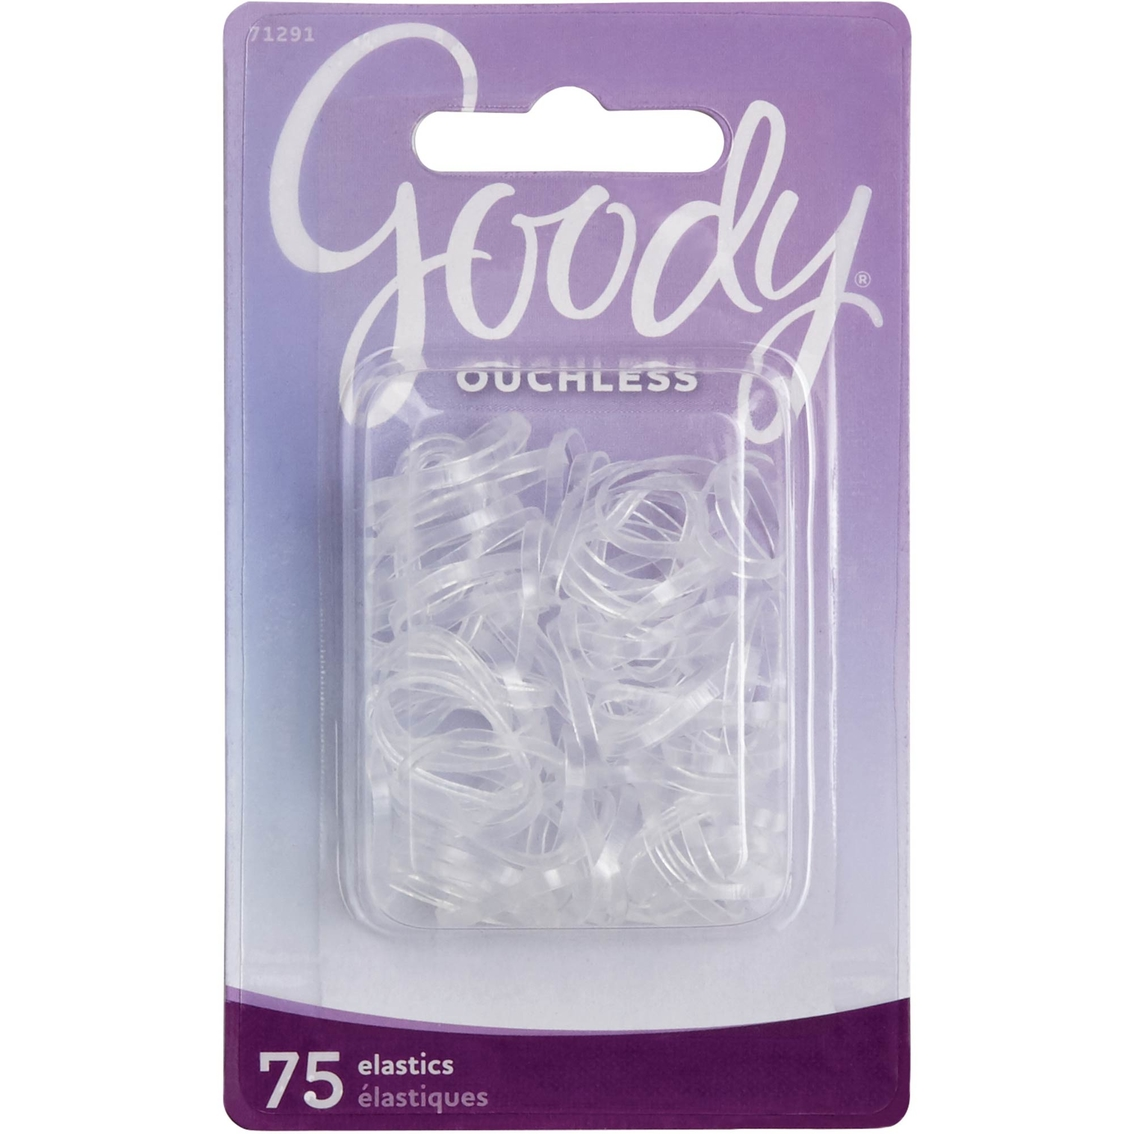 Goody Ouchless Mini Crystal Polyband Hair Tie Elastic 75 Pk.  256f817fb29